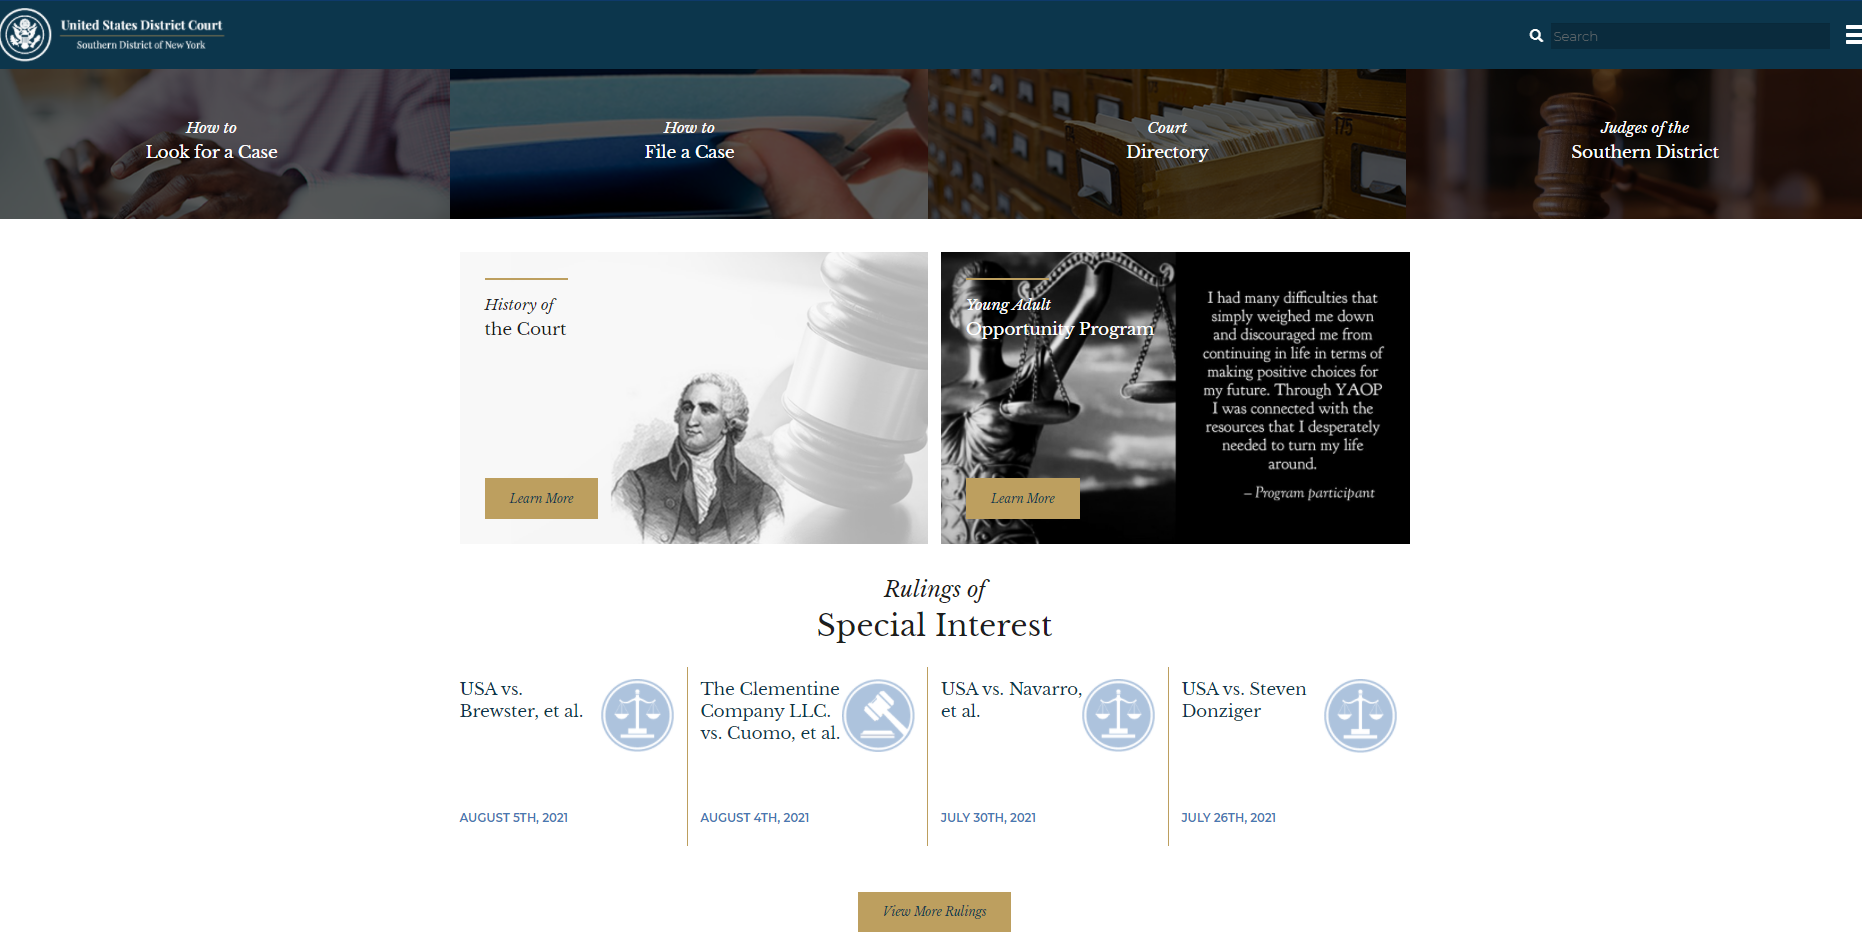 Southern District of New York website